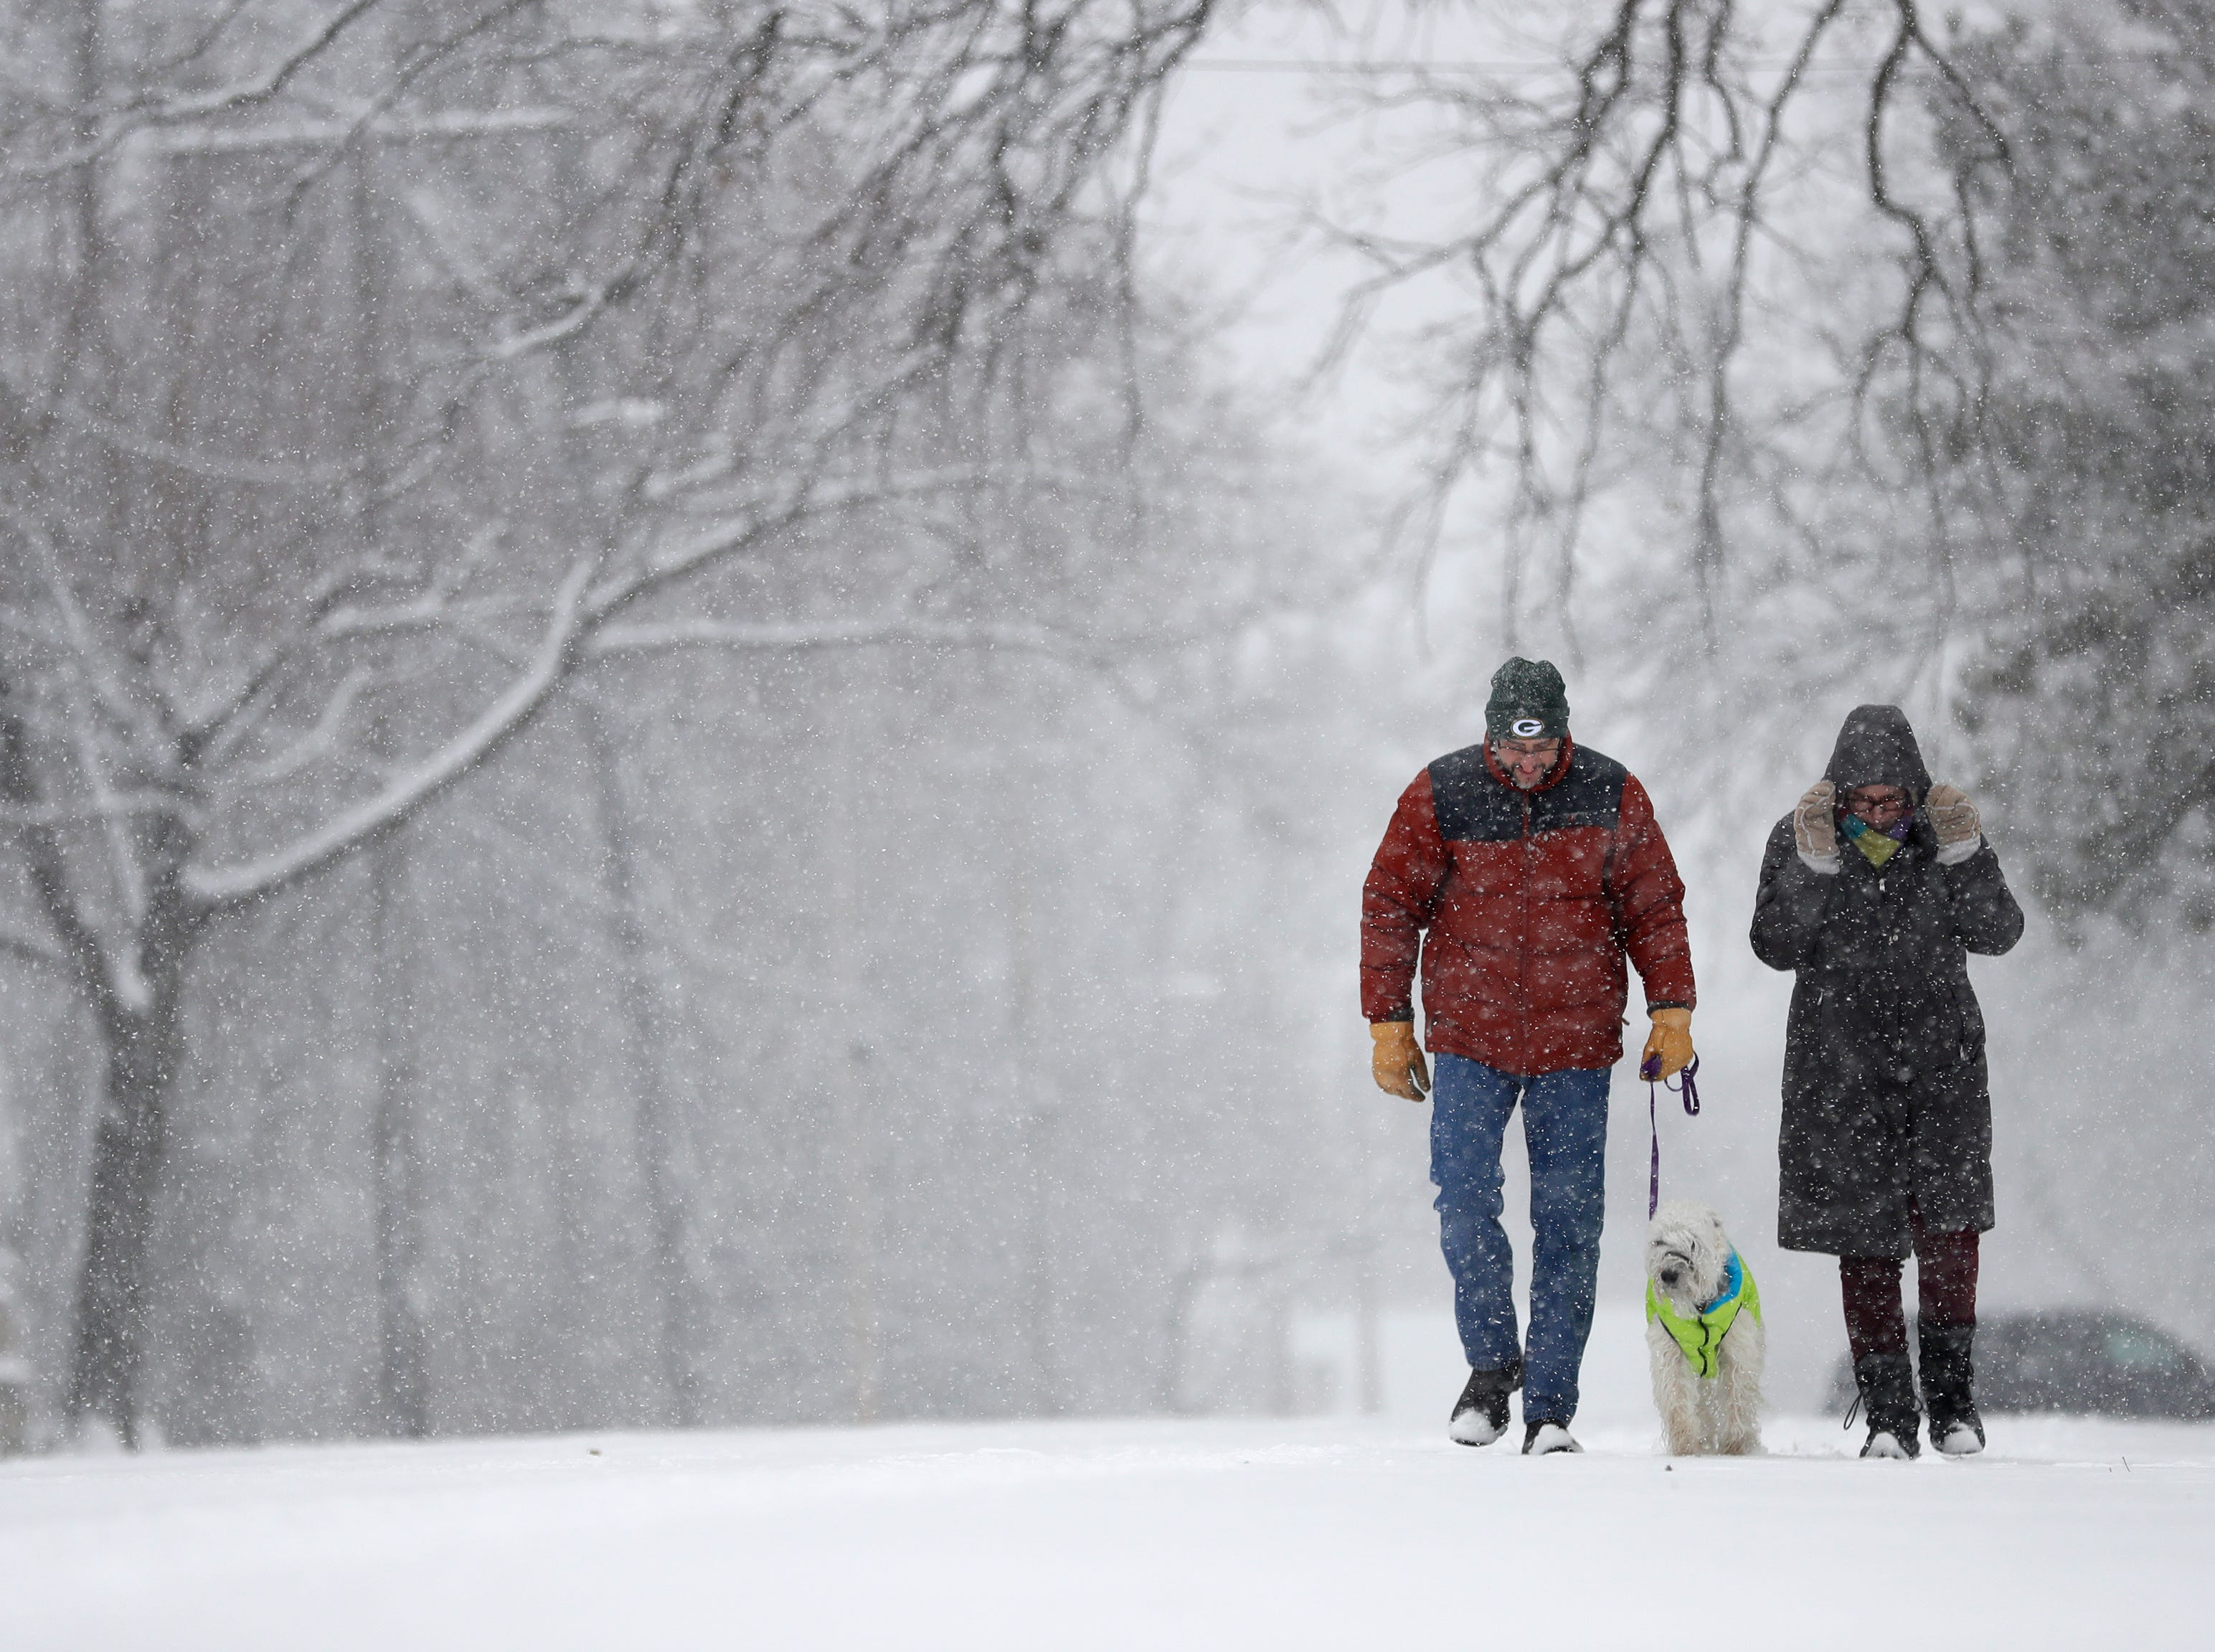 Mike and Trisha McGinnis of Neenah take a walk with their dog Cricket along N. Park Avenue during a snow storm Monday, December 31, 2018, in Neenah, Wis. Dan Powers/USA TODAY NETWORK-Wisconsin